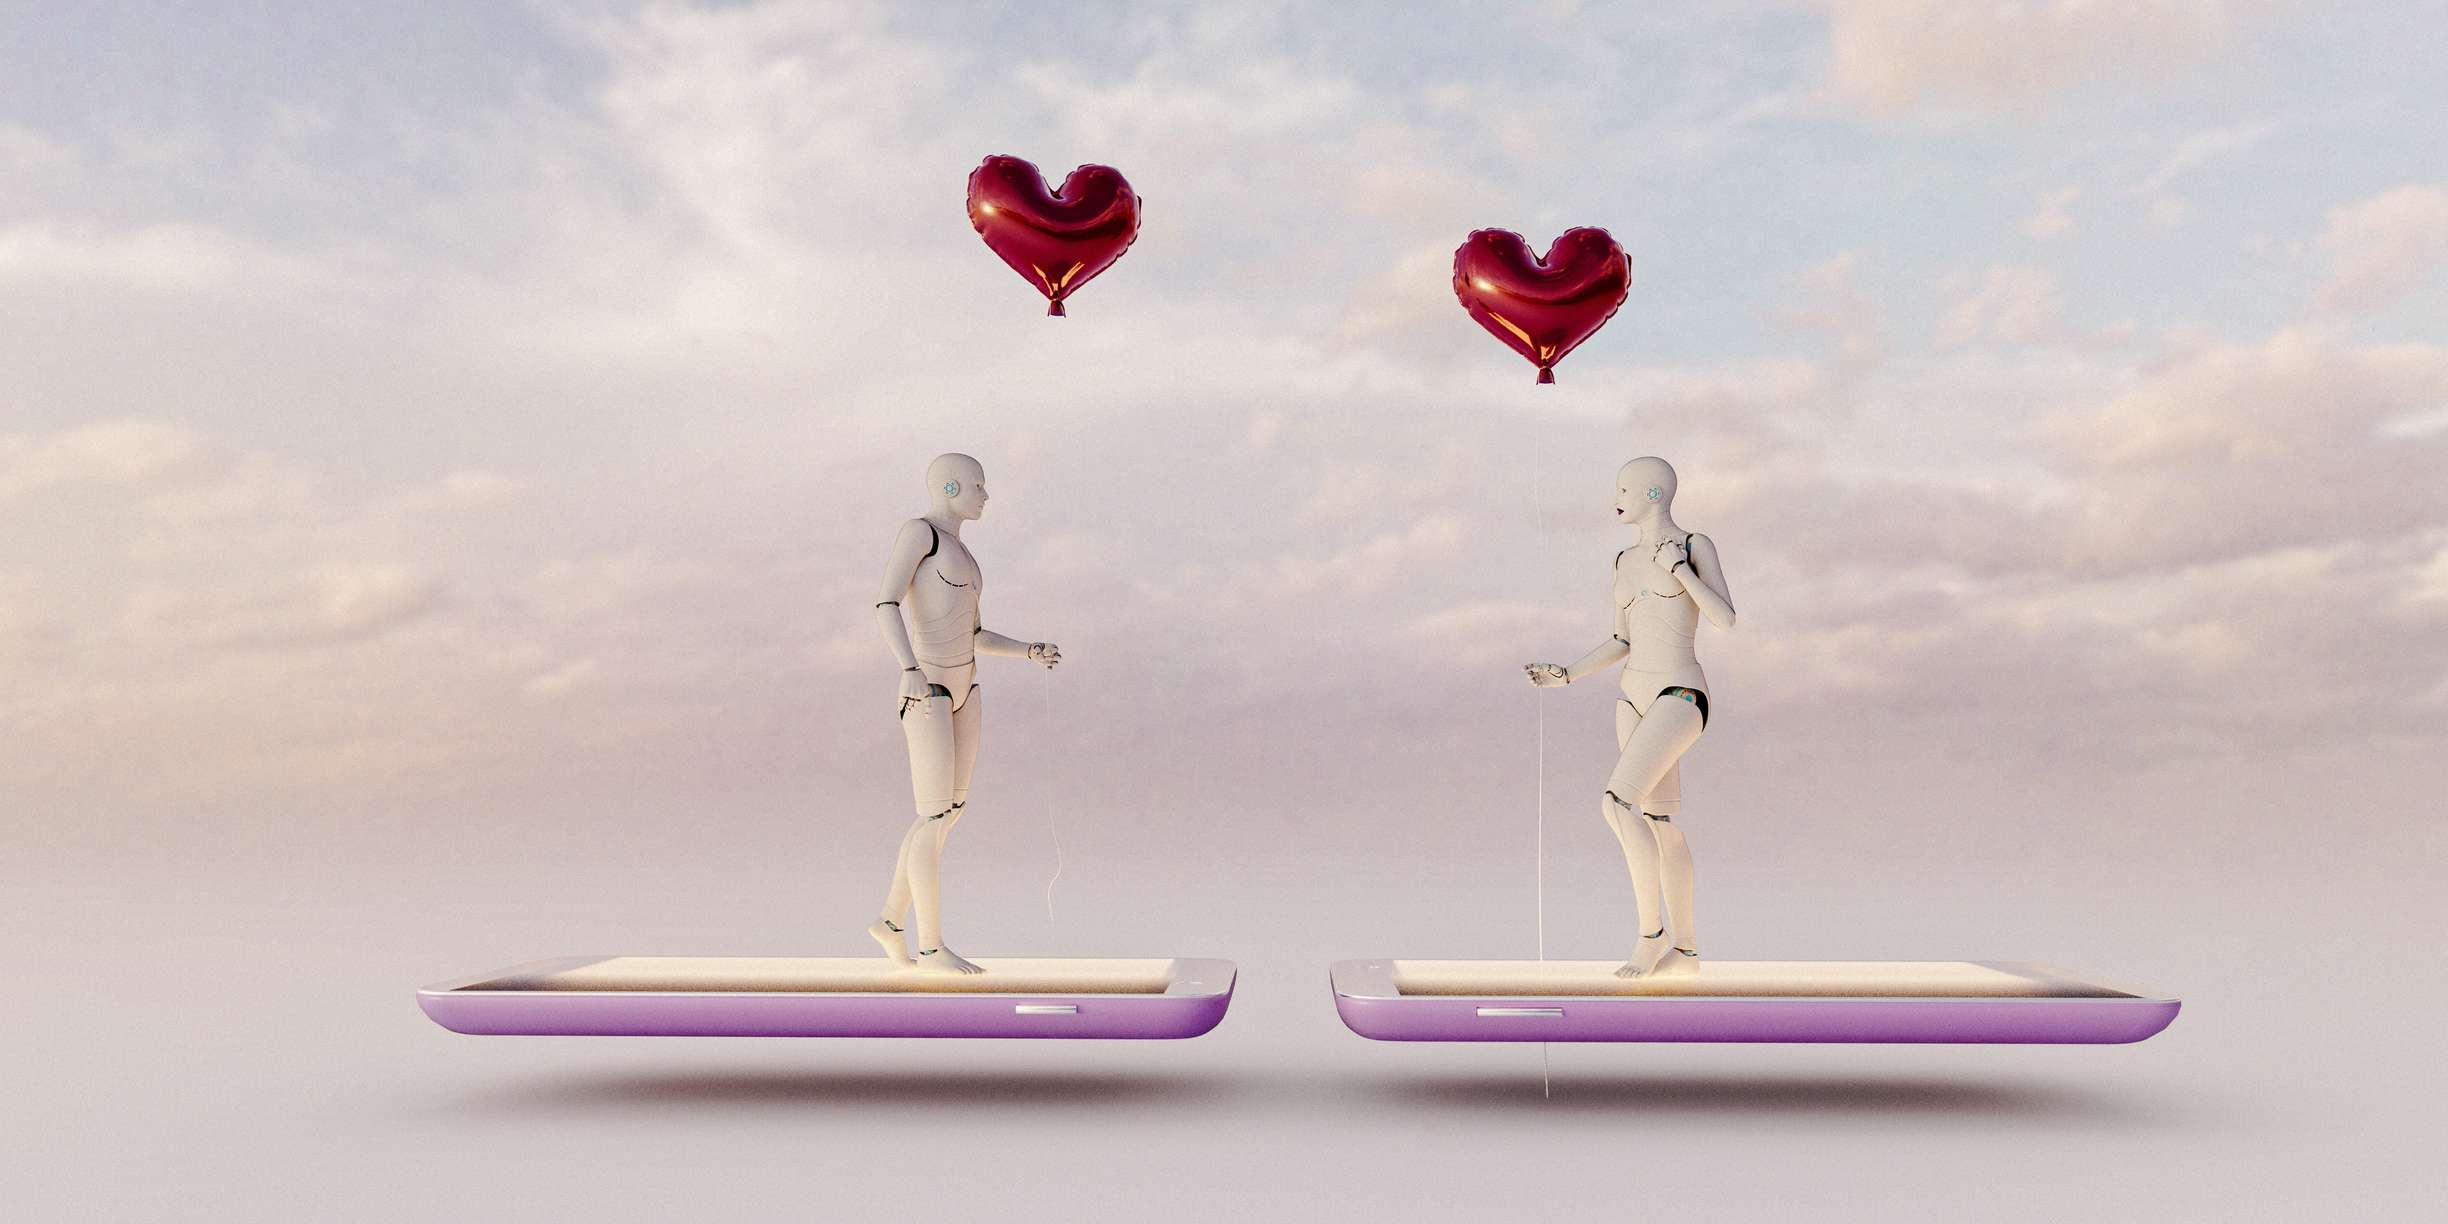 Online dating concept: male and female artificial intelligences meet holding red balloons while standing on mobile phones